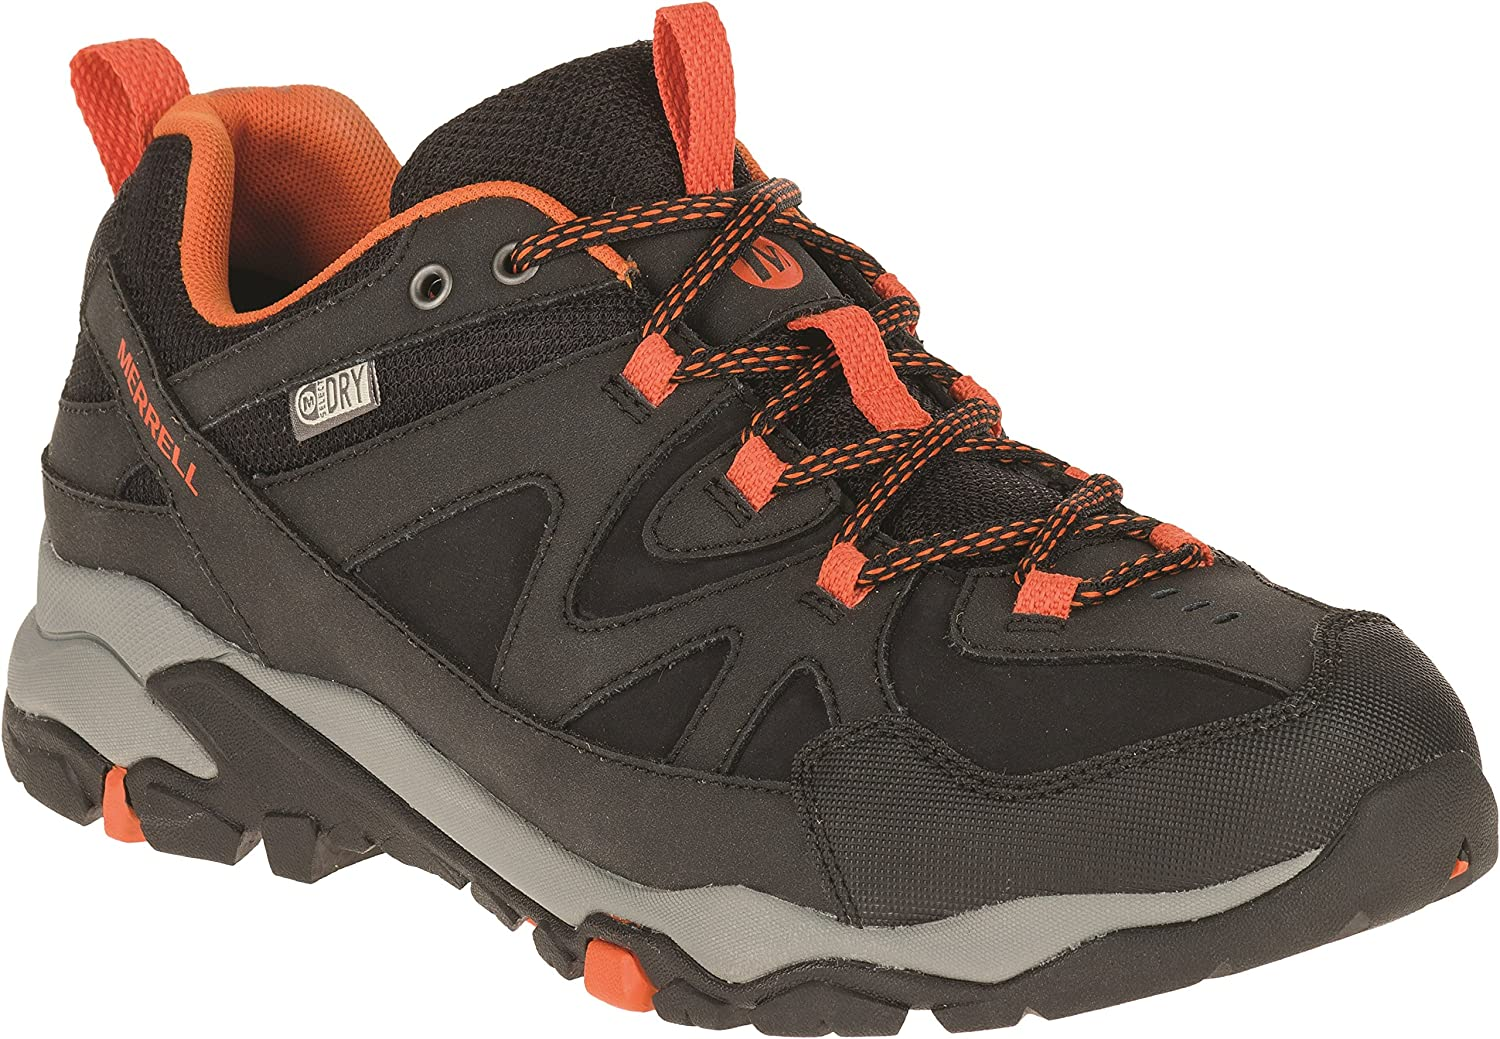 Merrell Men s Ridgepass Bolt Low Rise Hiking Shoes  Amazon.co.uk ... d28cdb5b1d